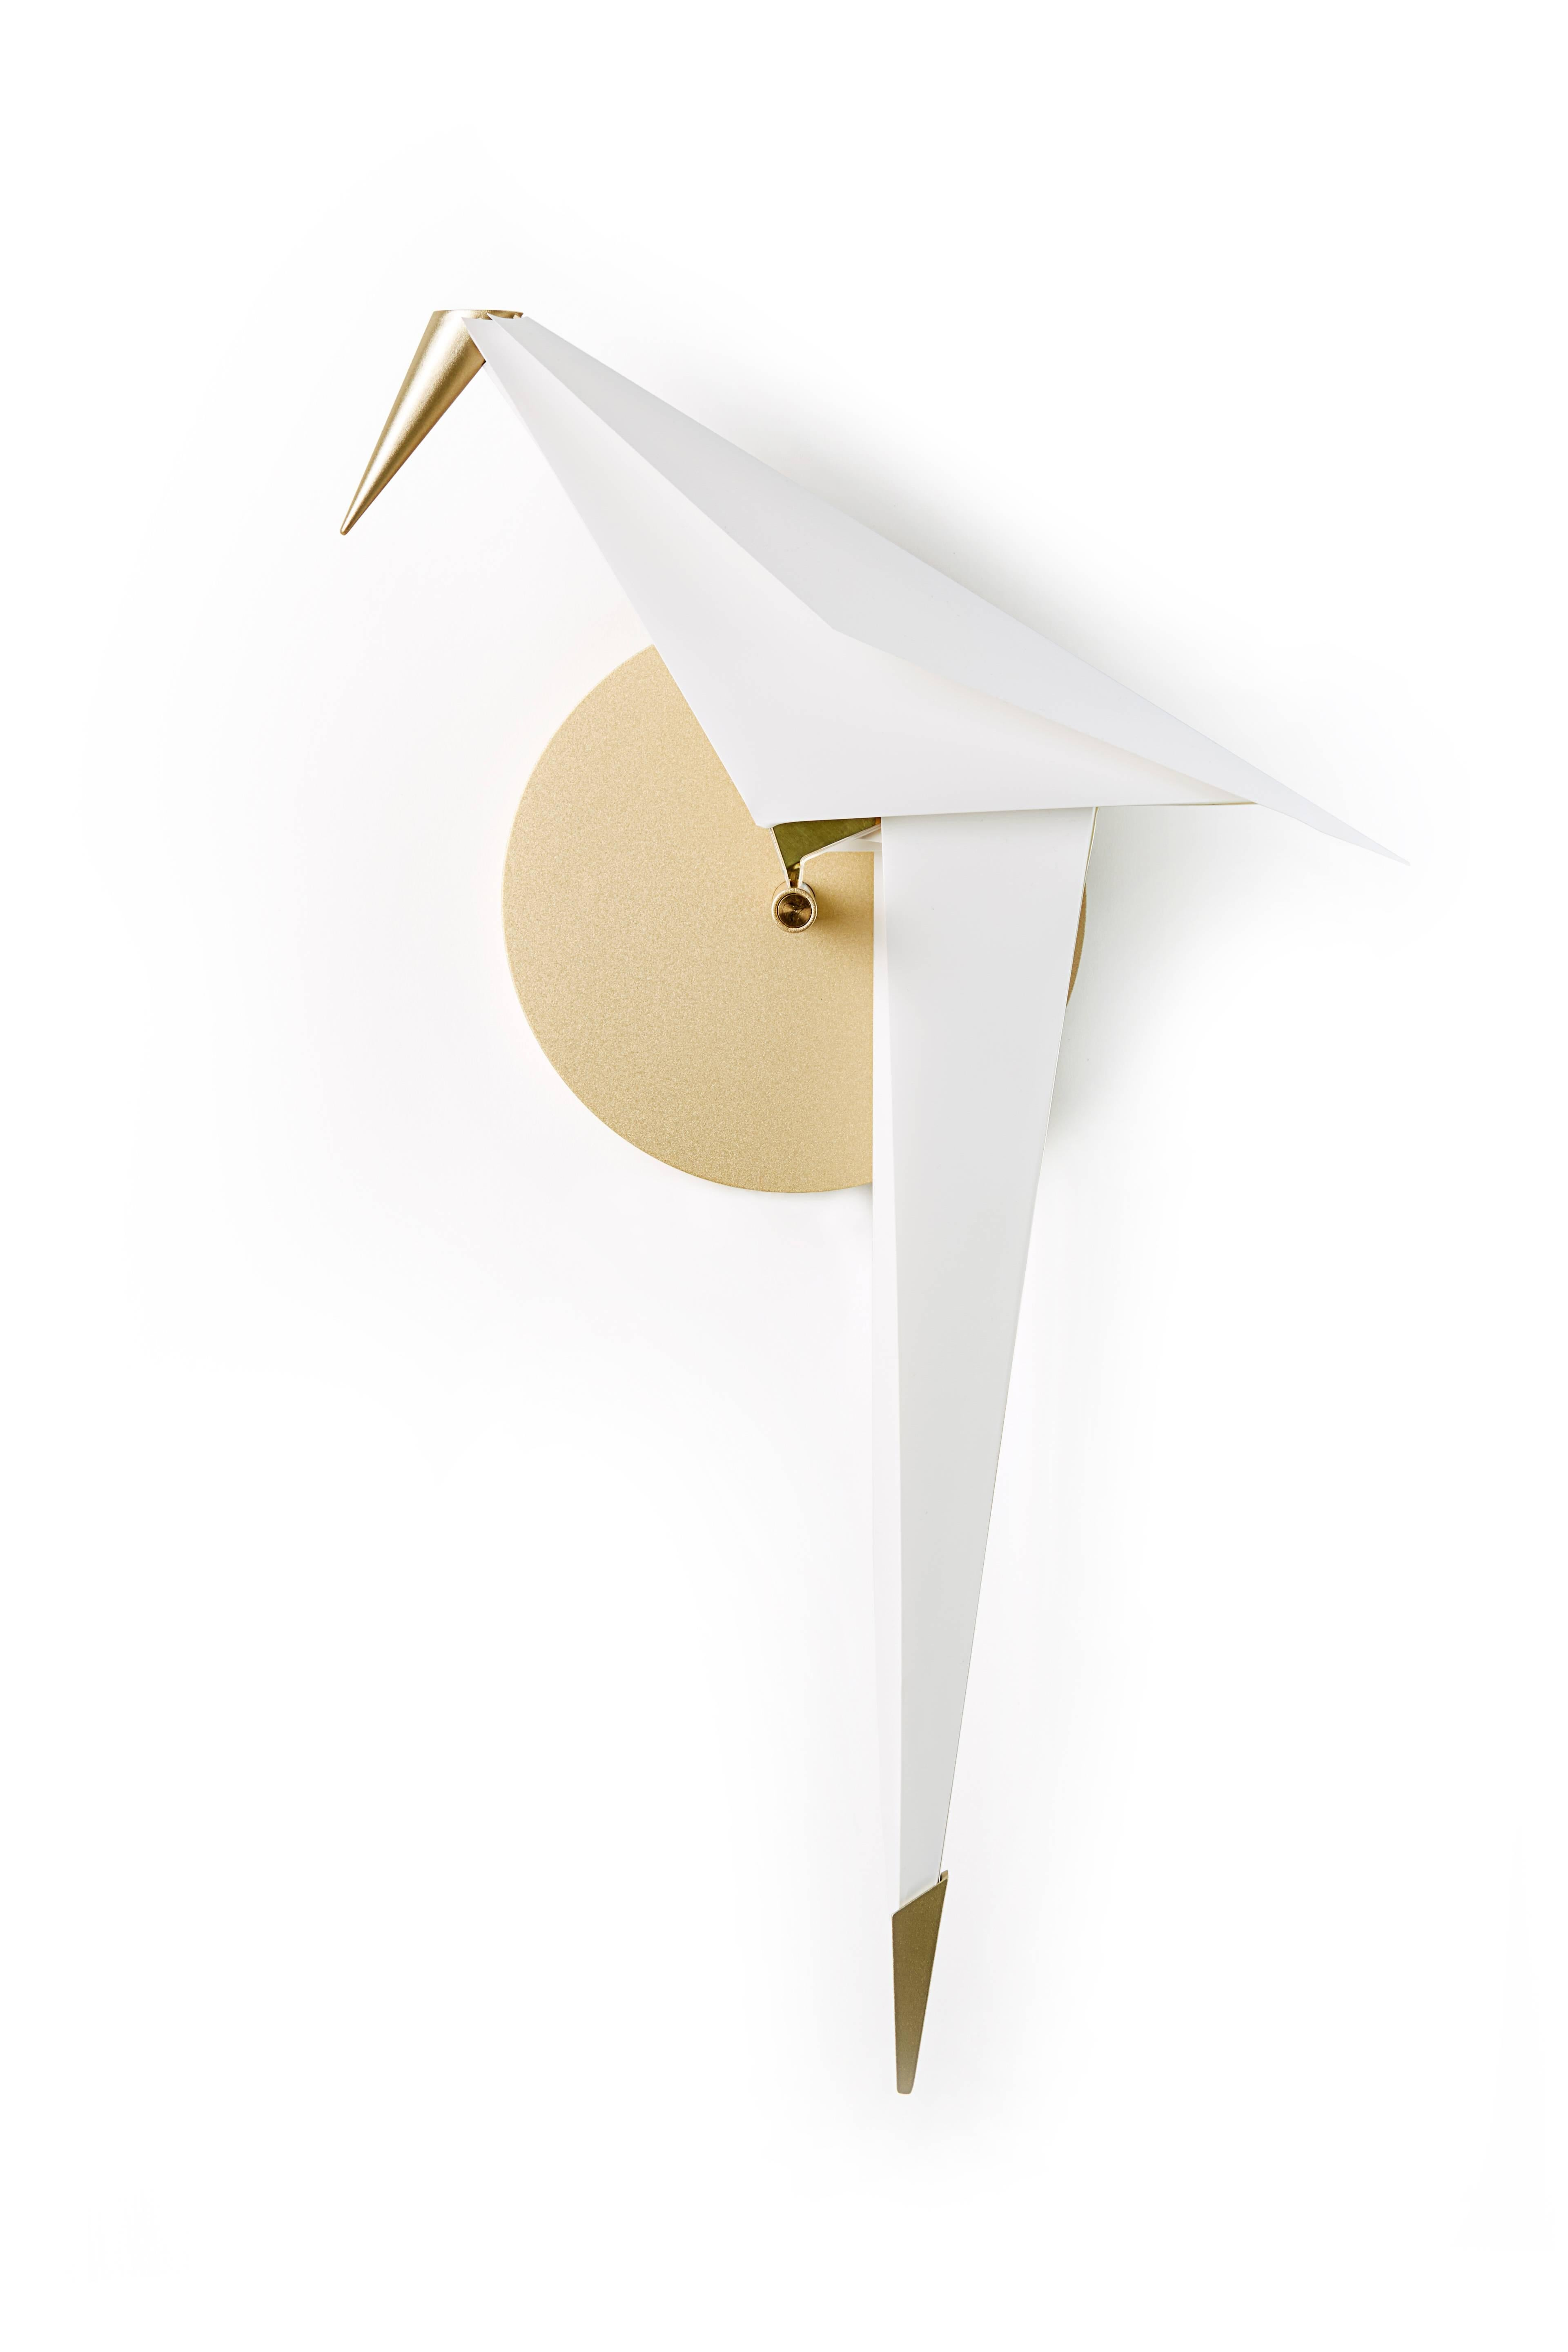 Moooi Perch LED Wall Sconce Light in Brass with Small ... on Small Wall Sconce Light id=72579